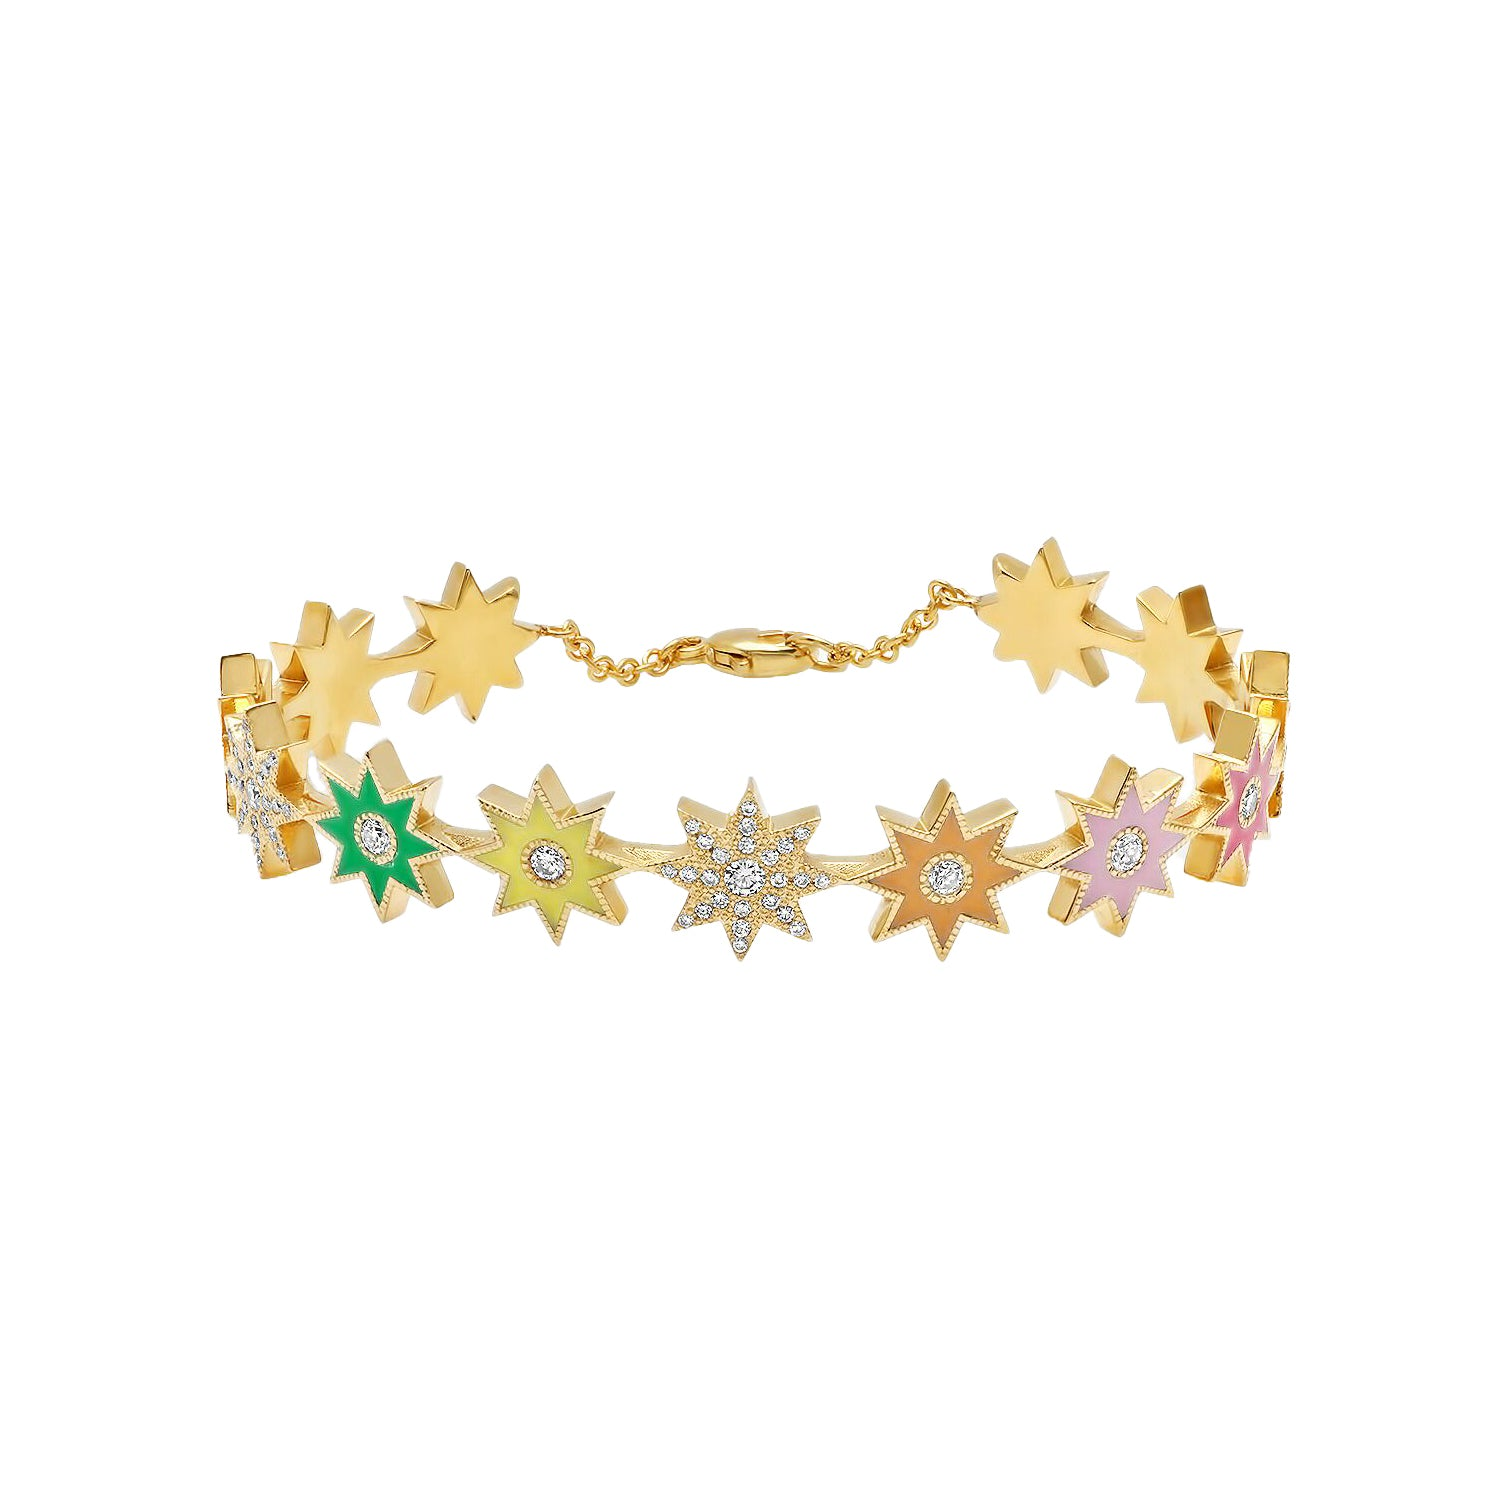 Multicolor Enamel Star Bracelet by Colette for Broken English Jewelry